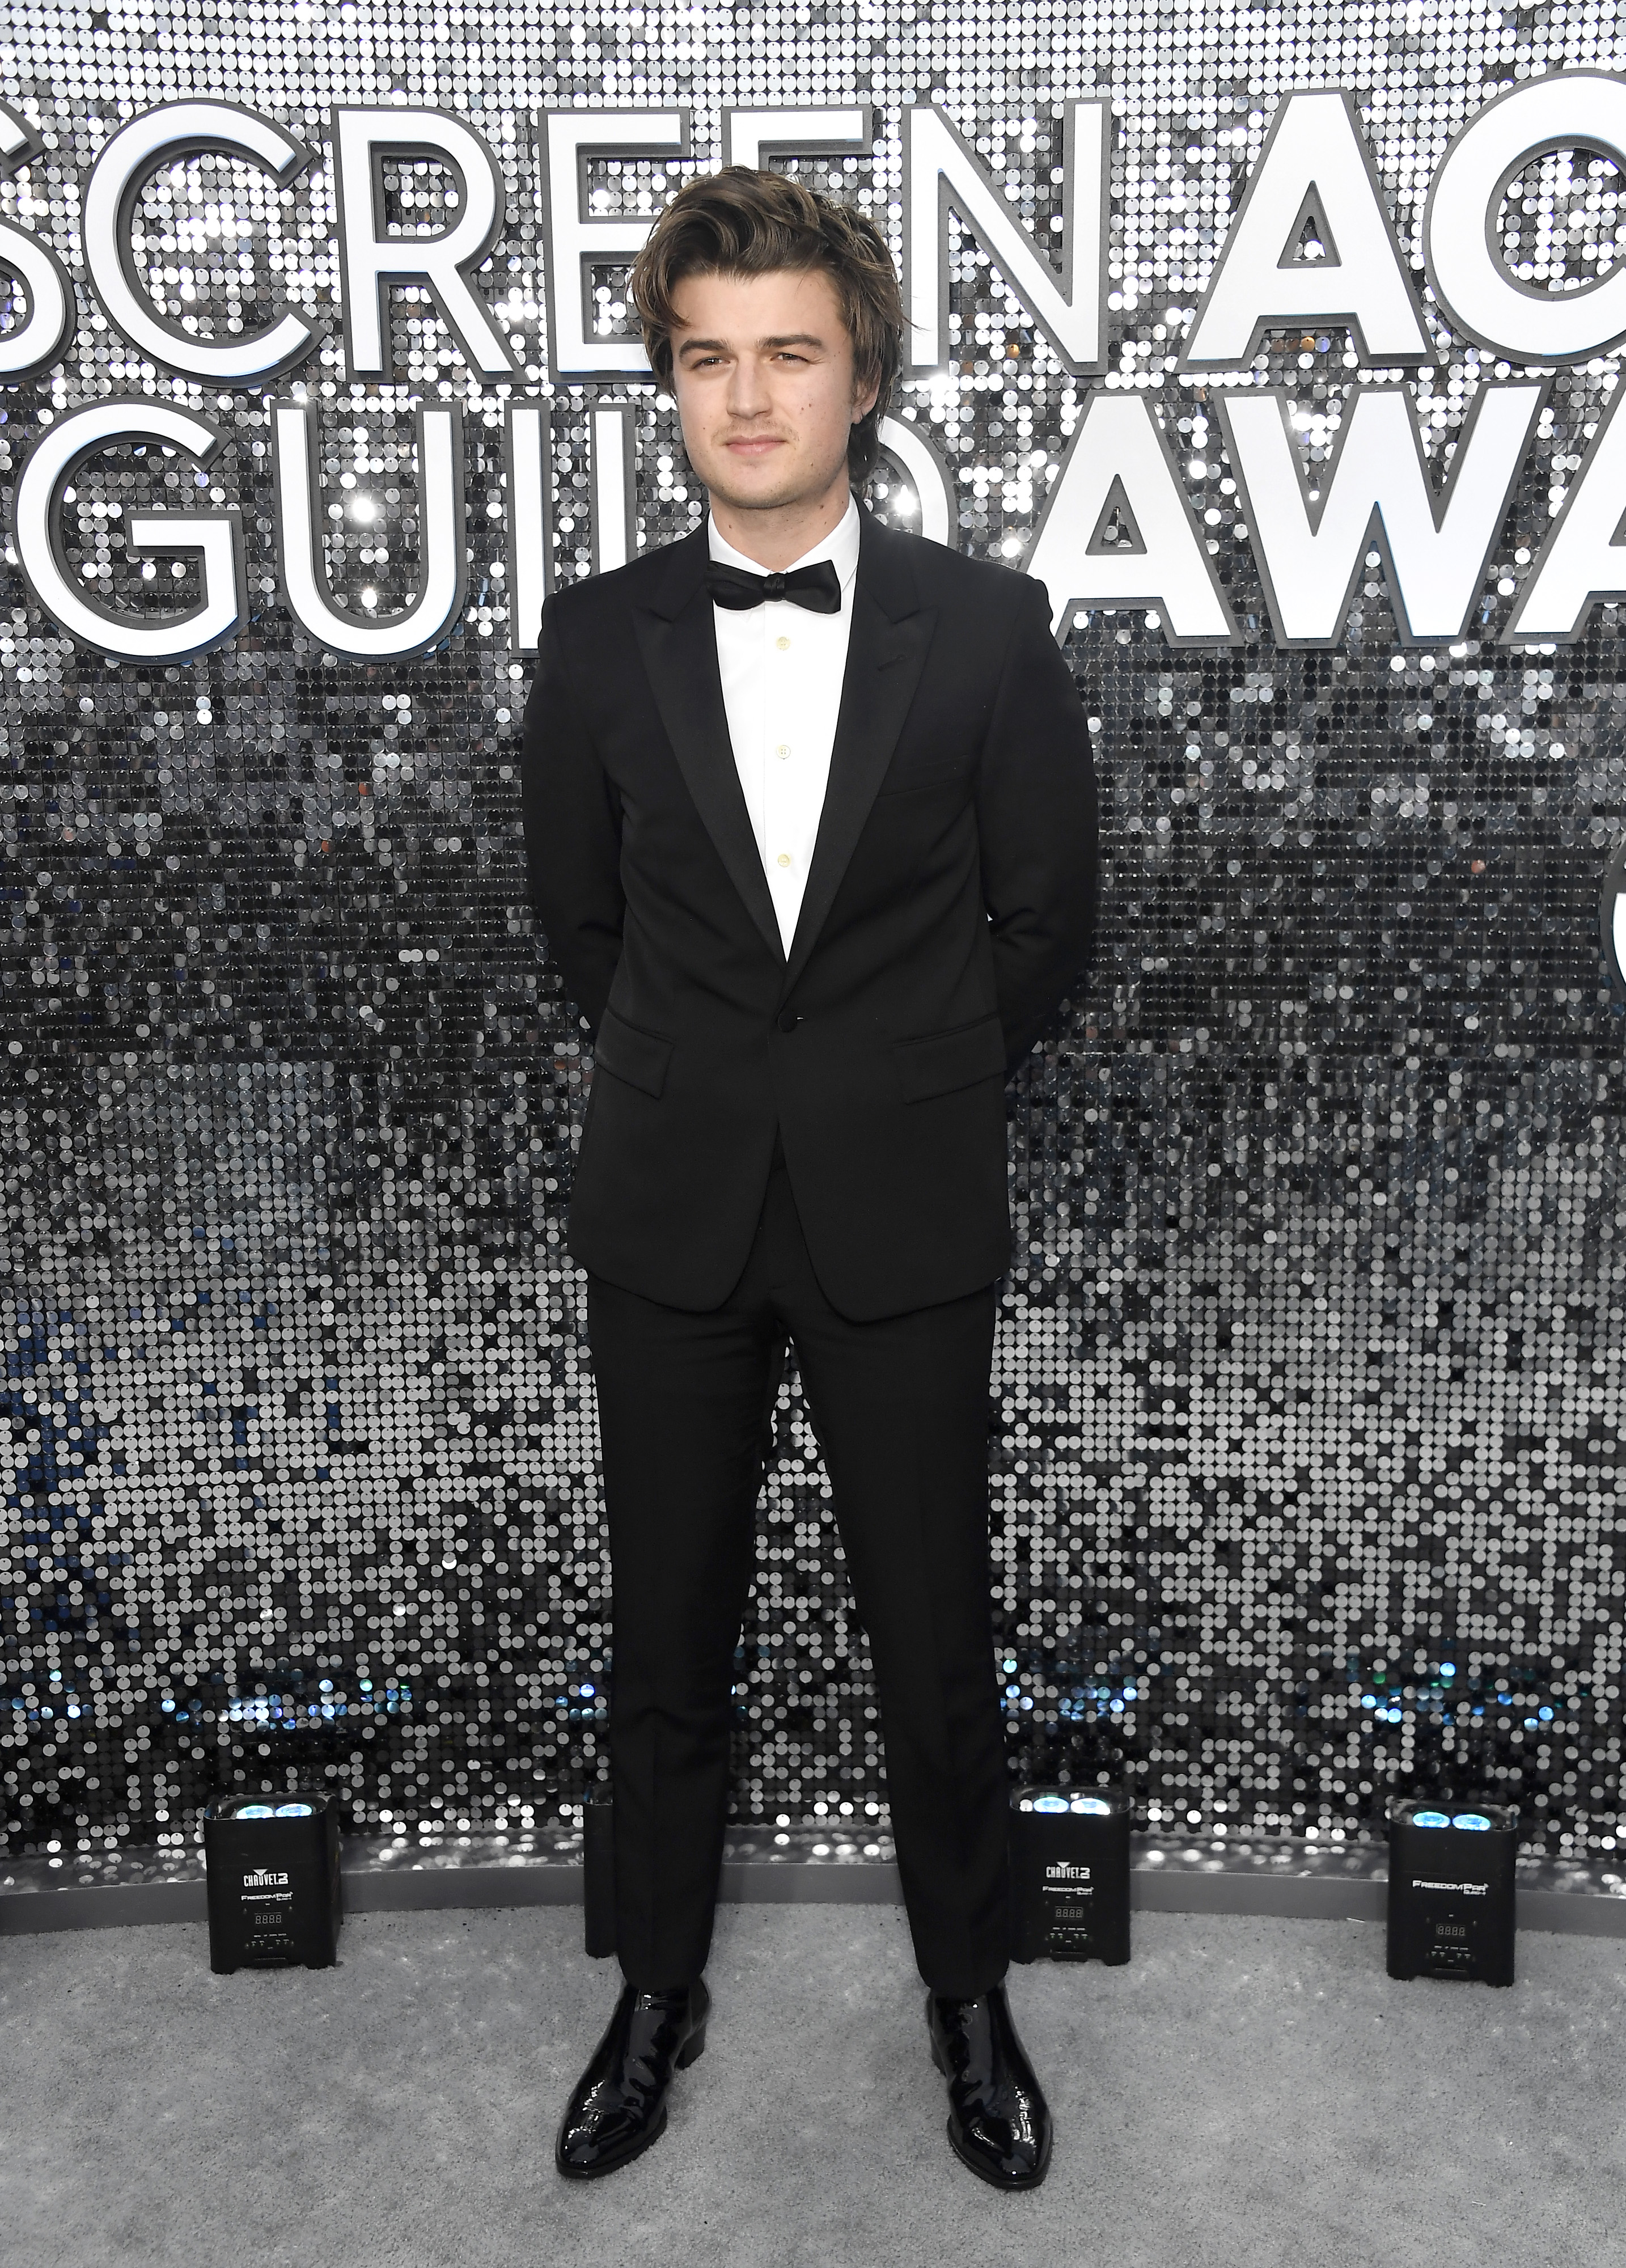 LOS ANGELES, CALIFORNIA - JANUARY 19: Joe Keery attends the 26th Annual Screen ActorsGuild Awards at The Shrine Auditorium on January 19, 2020 in Los Angeles, California. (Photo by Frazer Harrison/Getty Images)